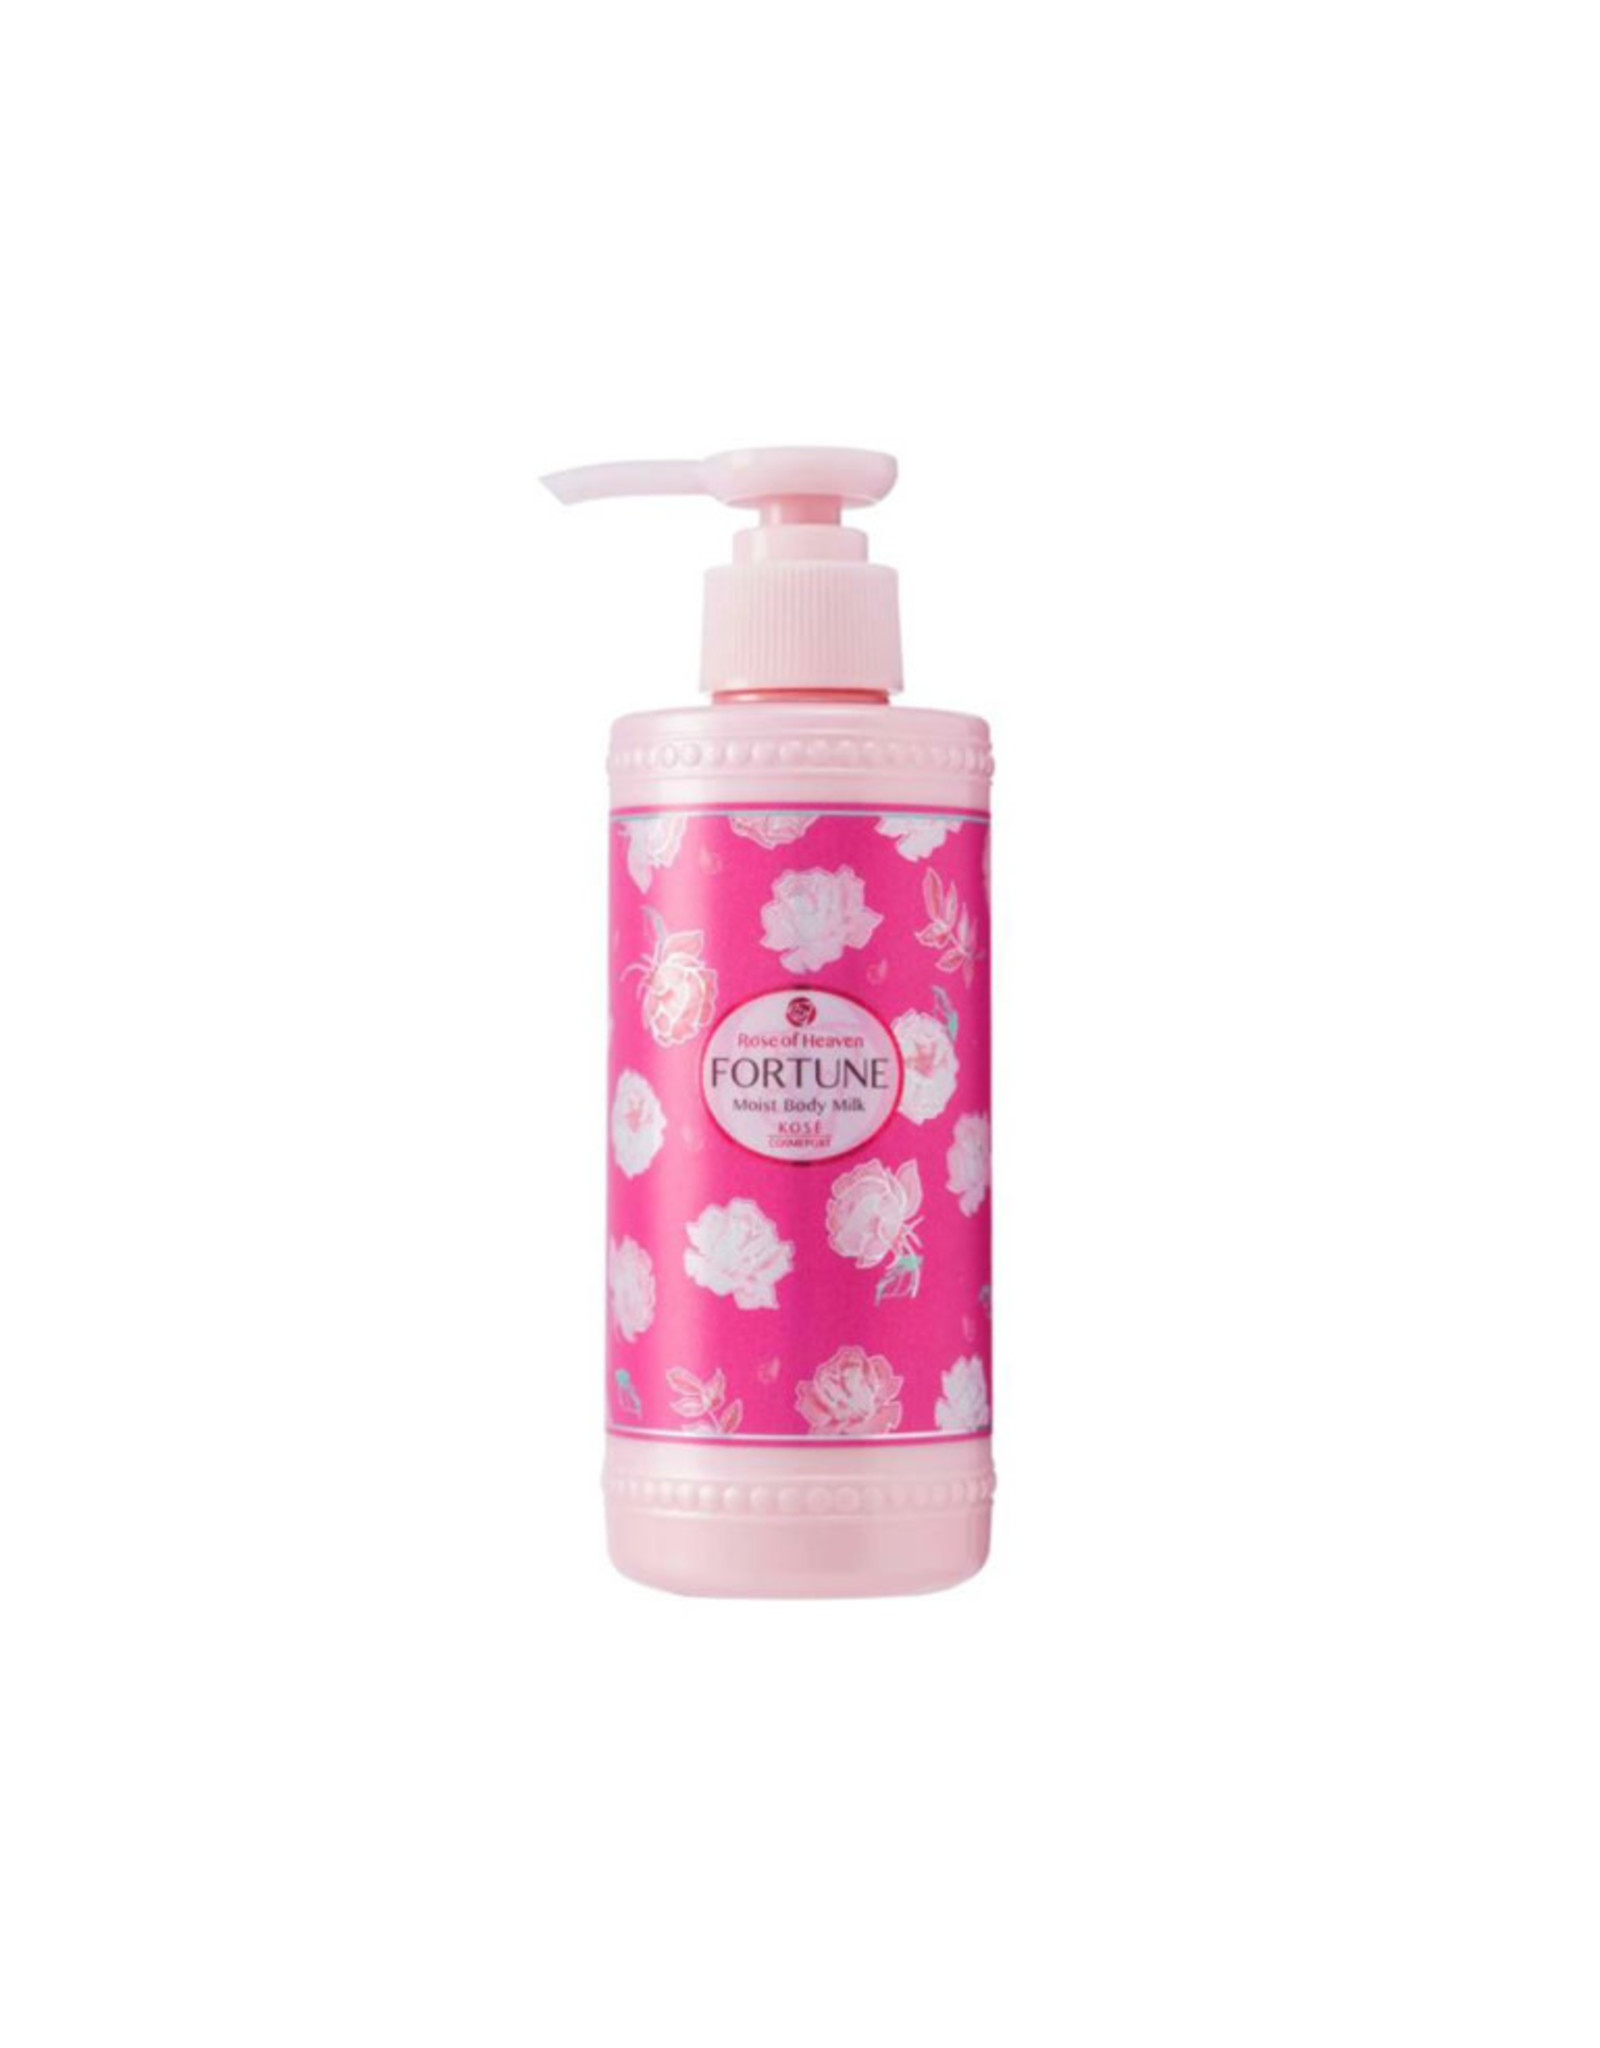 Kose Kose Rose of Heaven Fortune RH Body Milk - Moist